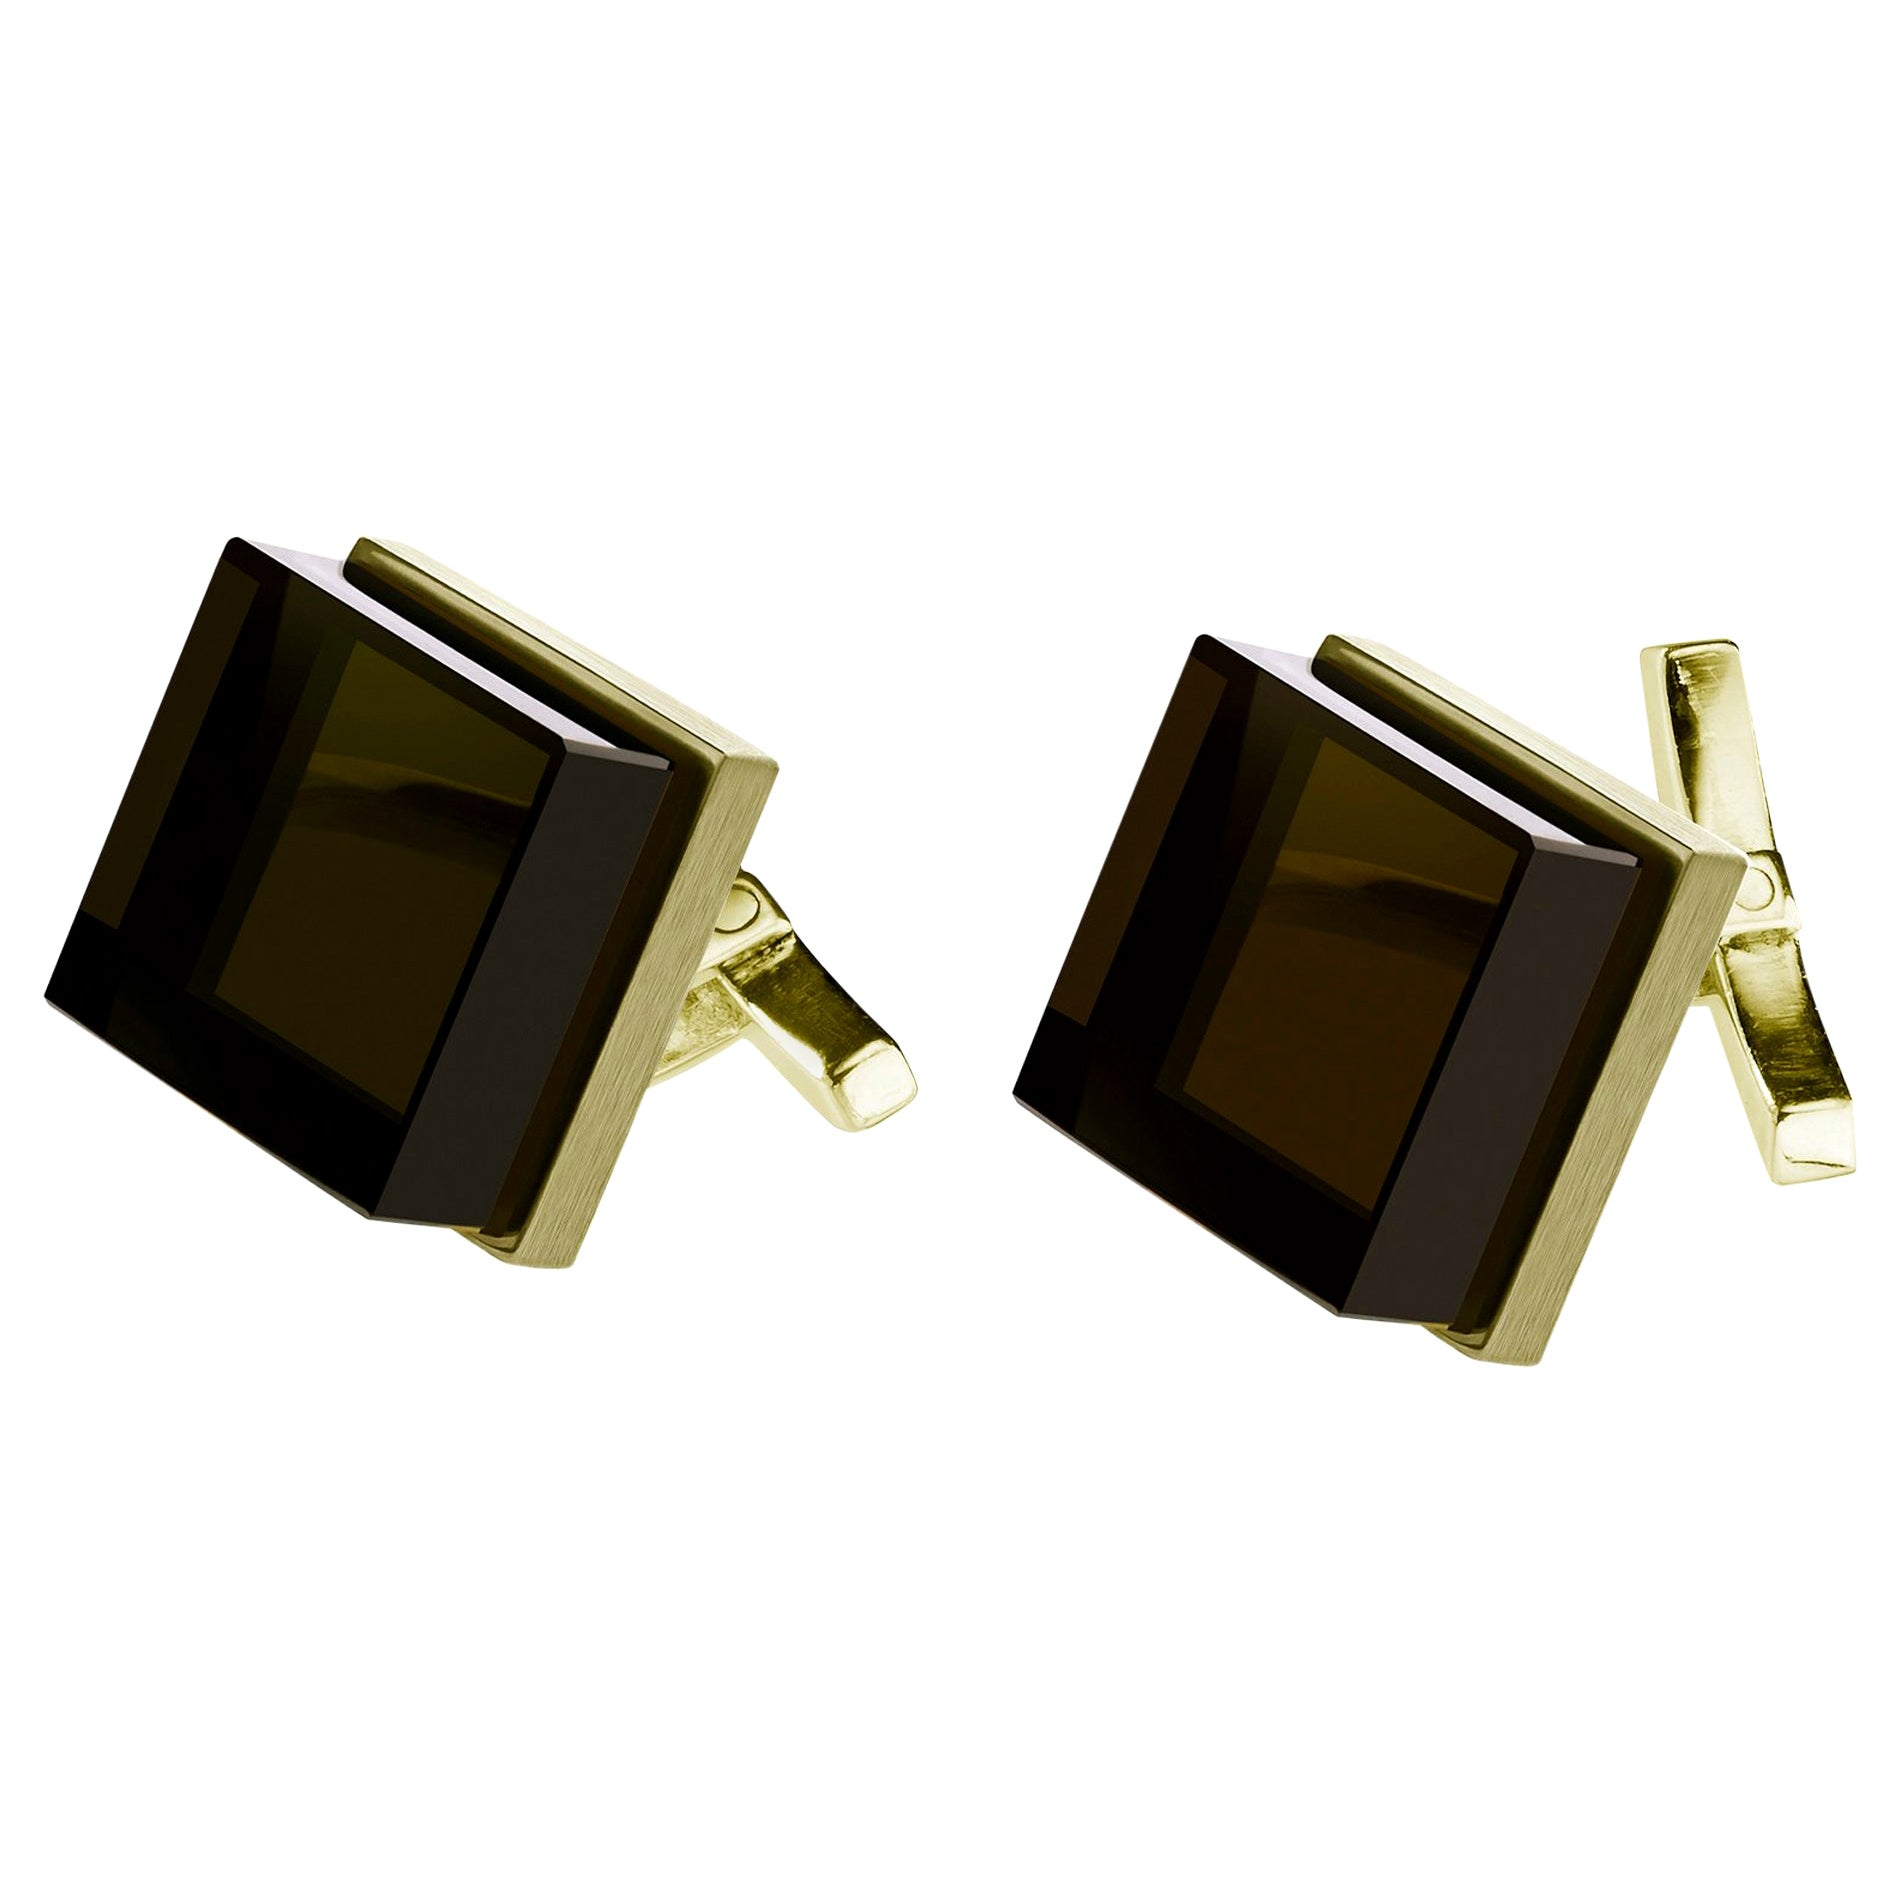 Yellow Gold-Plated Sterling Silver Art Deco Style Cufflinks with Quartz